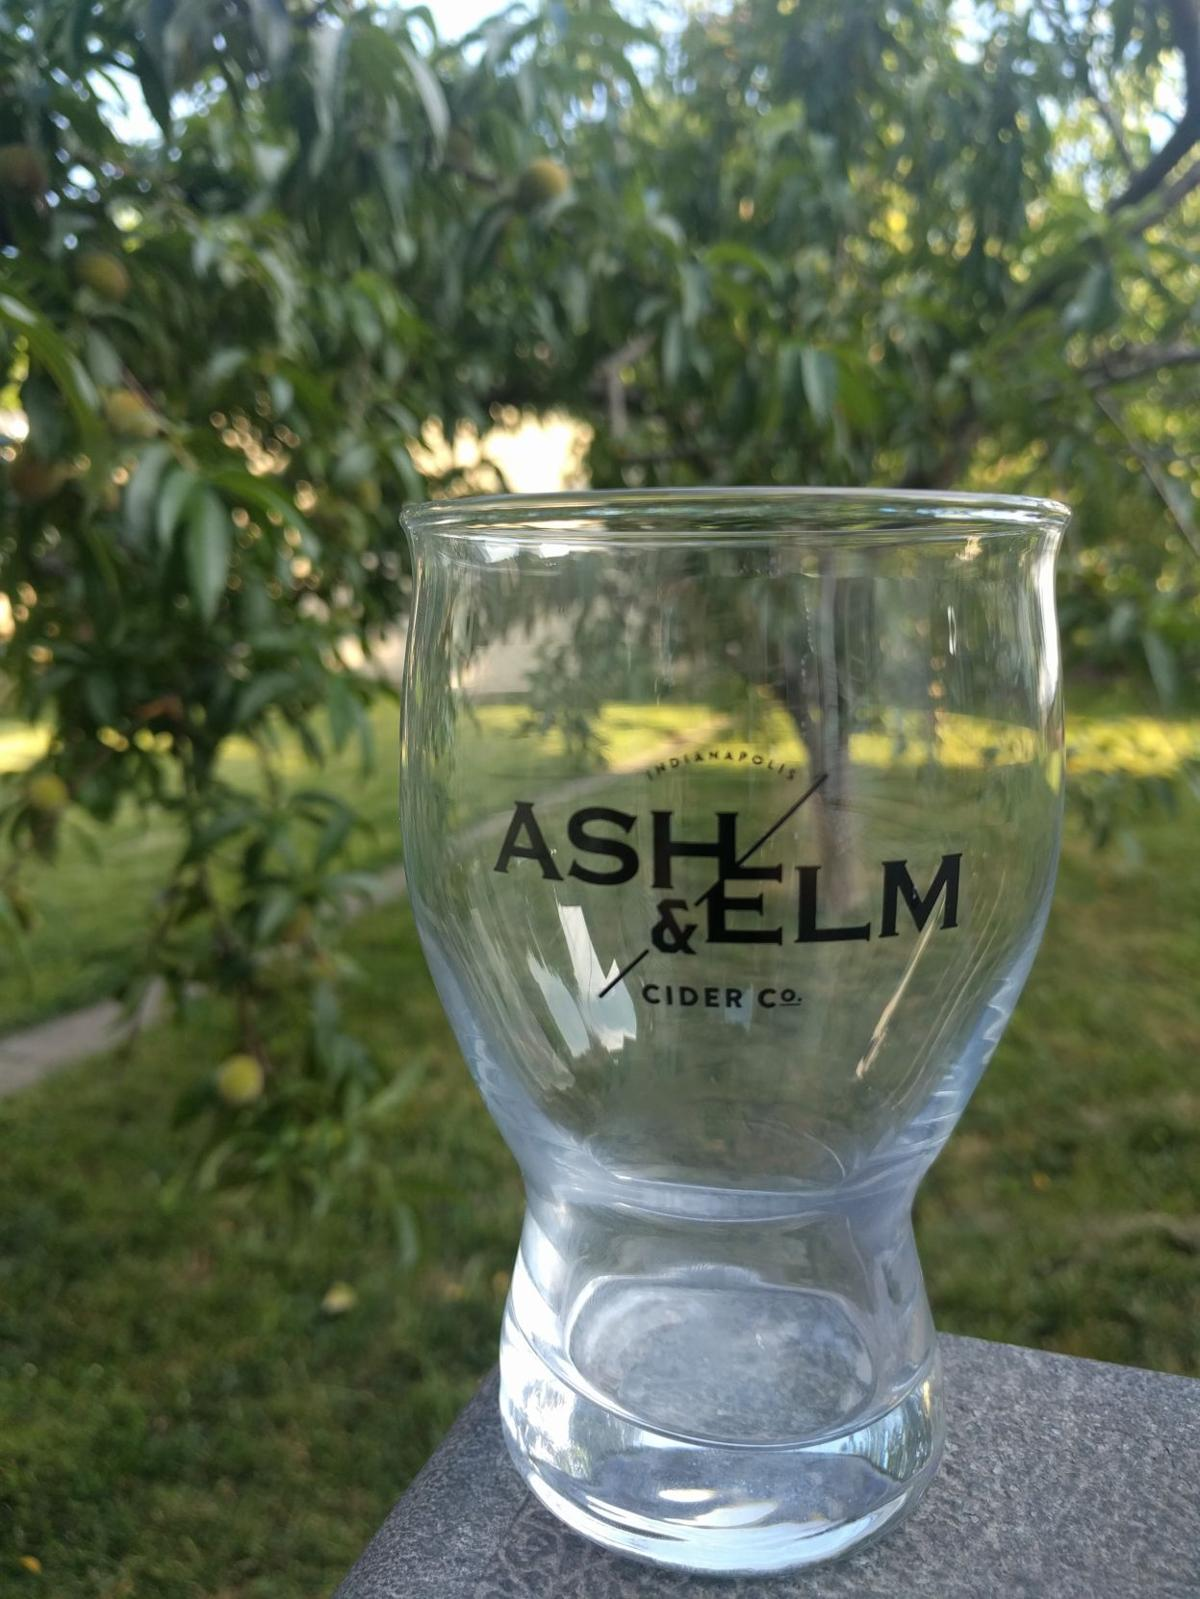 New Indianapolis cidery unites history with modernity